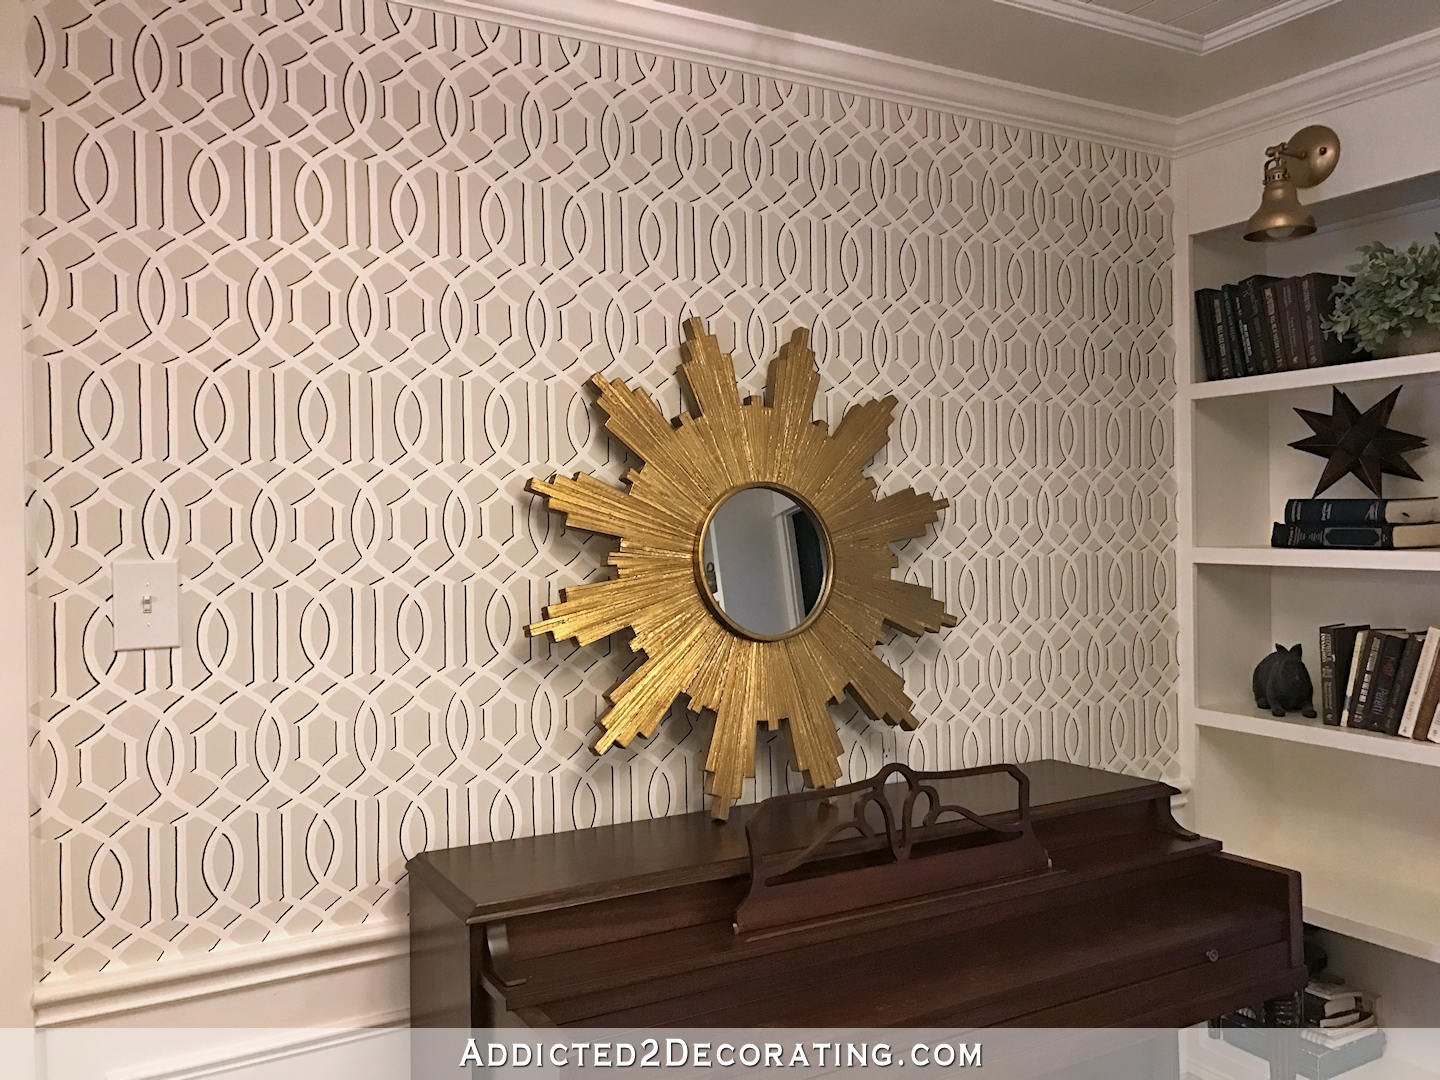 Music Room Stenciled Walls Update Addicted 2 Decorating